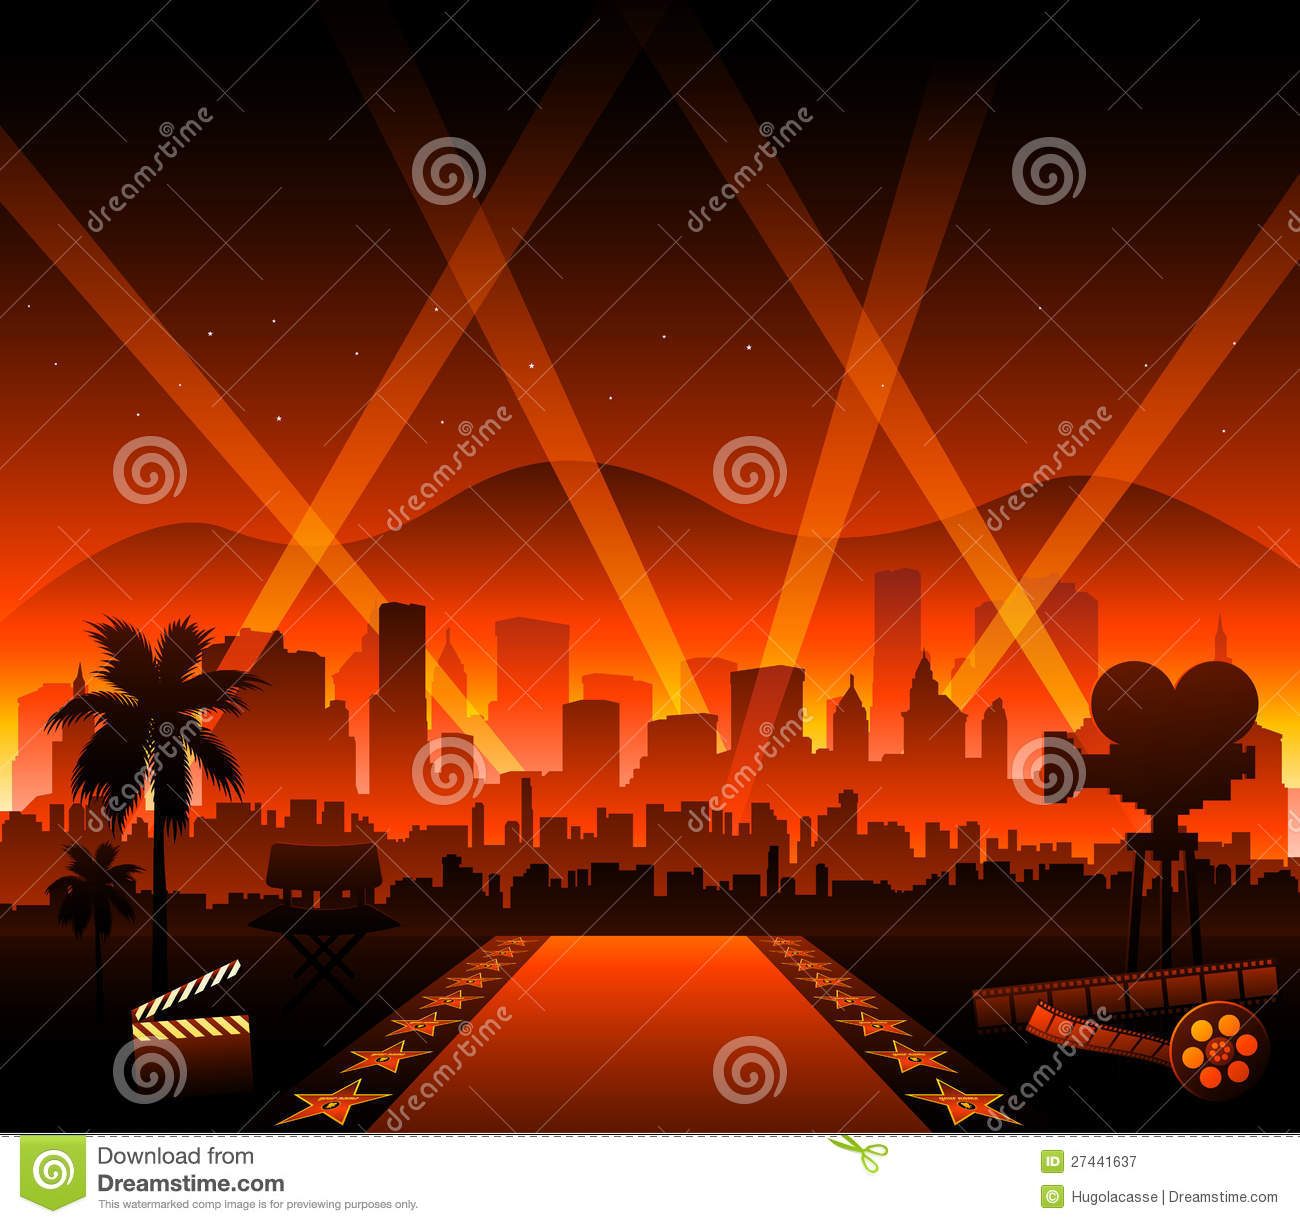 Hollywood Movie Red Carpet Royalty Free Stock Photography